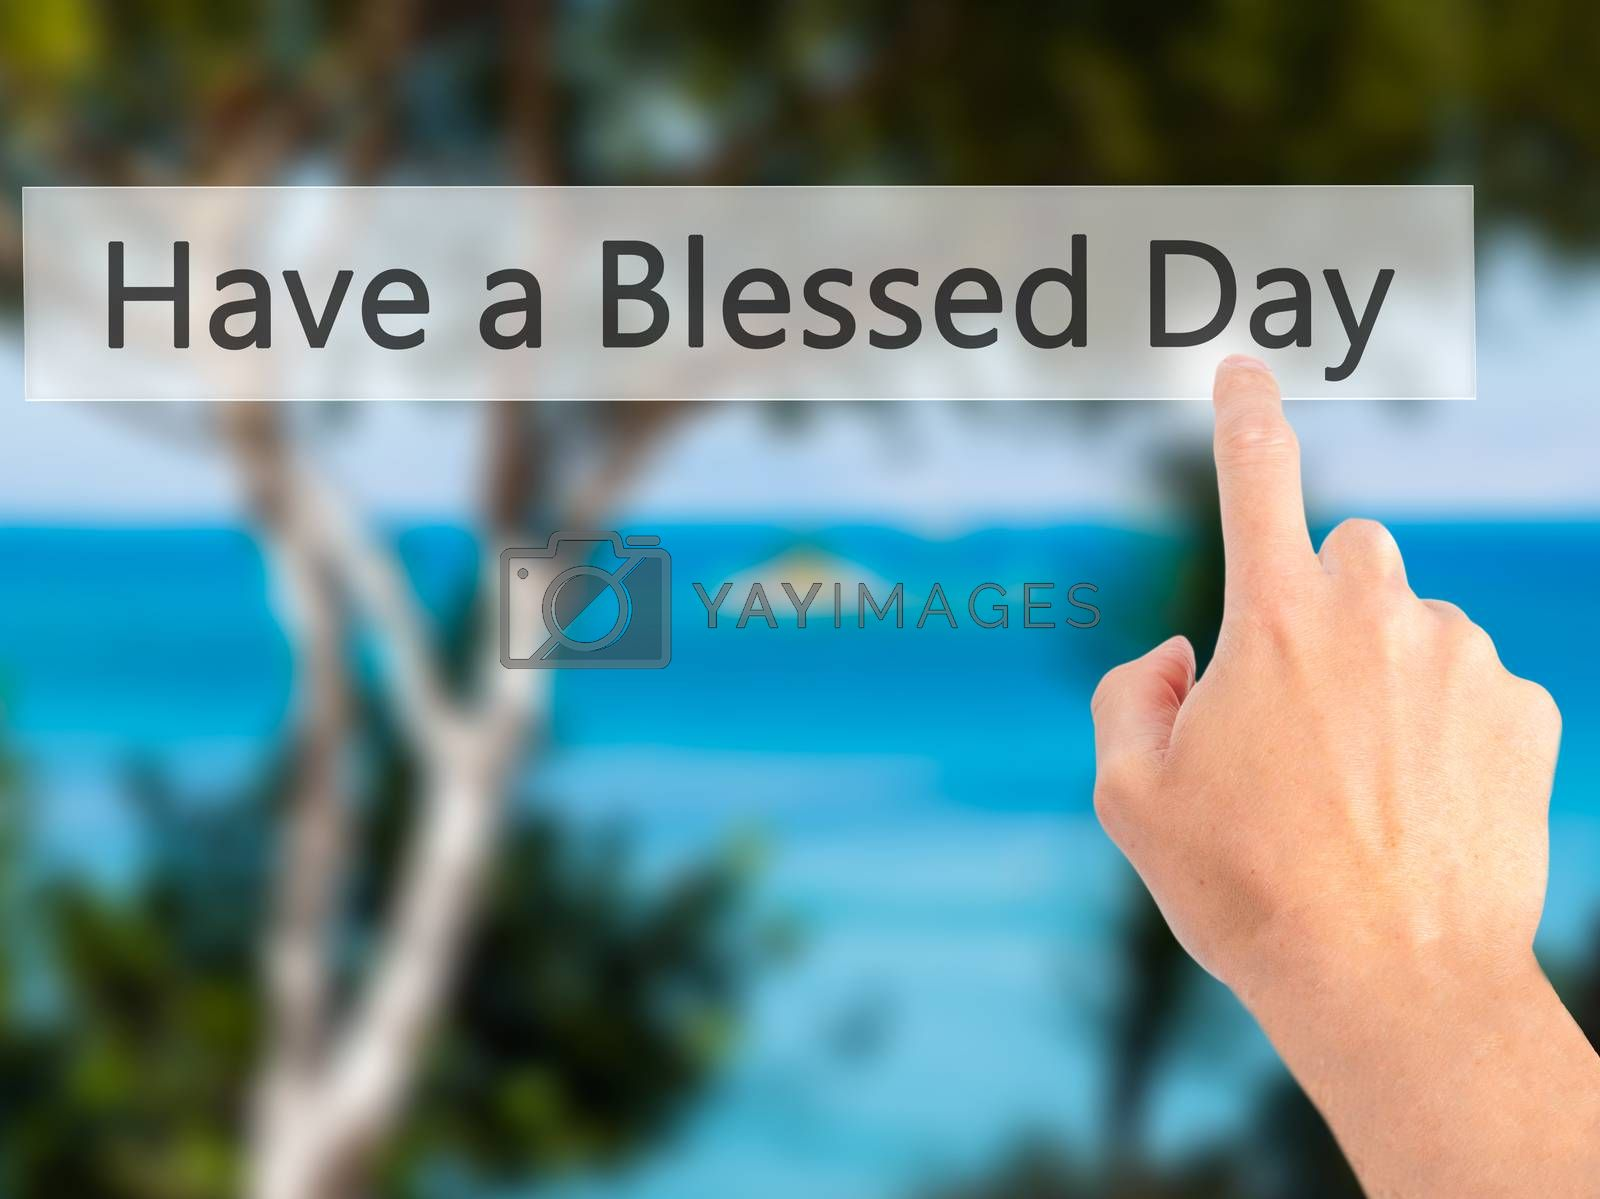 Have a Blessed Day - Hand pressing a button on blurred backgroun by jackald